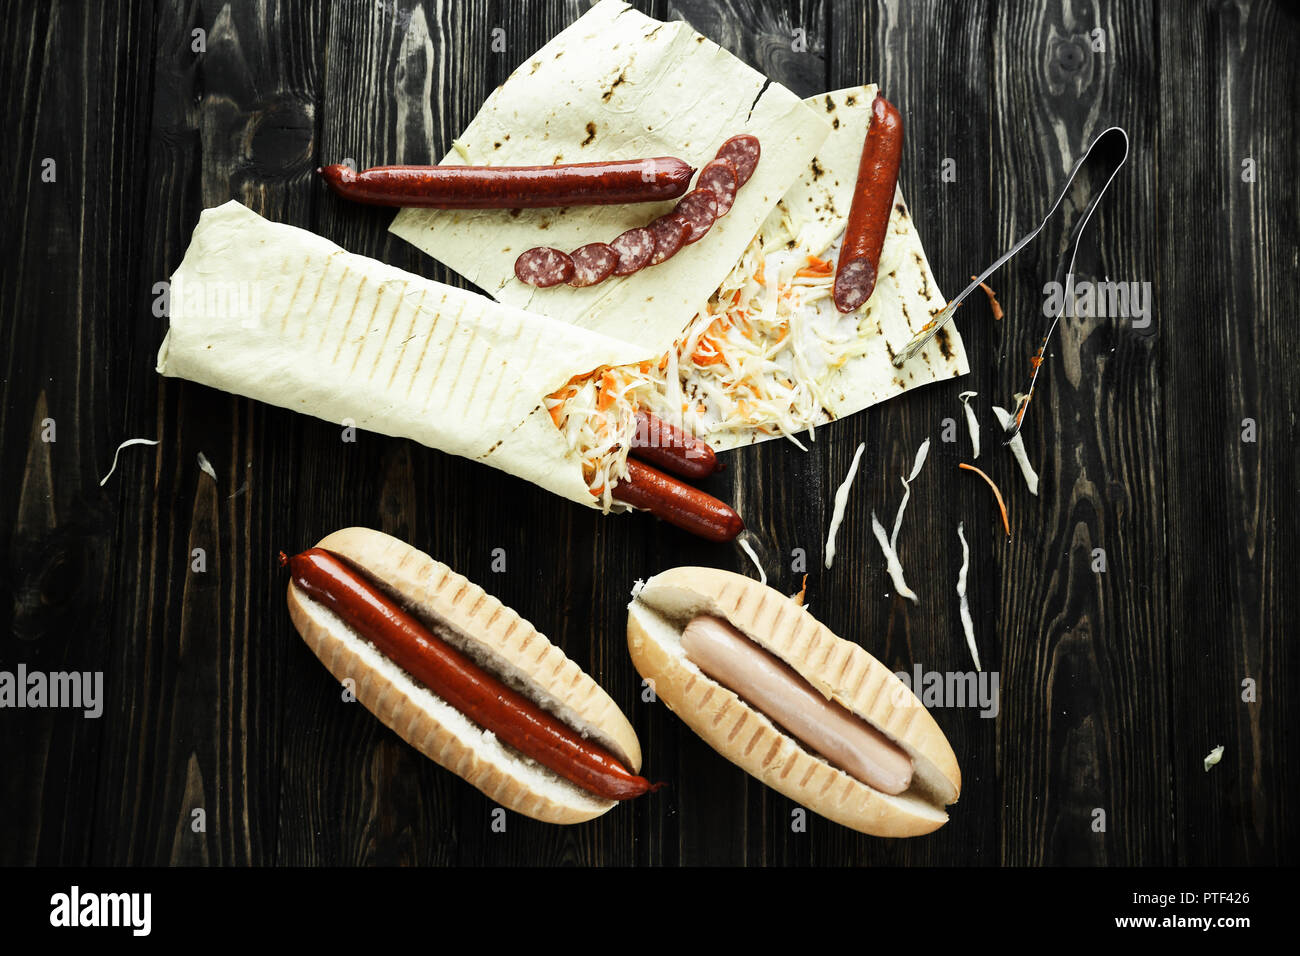 preparation of hot dogs with sausage and sausages - Stock Image